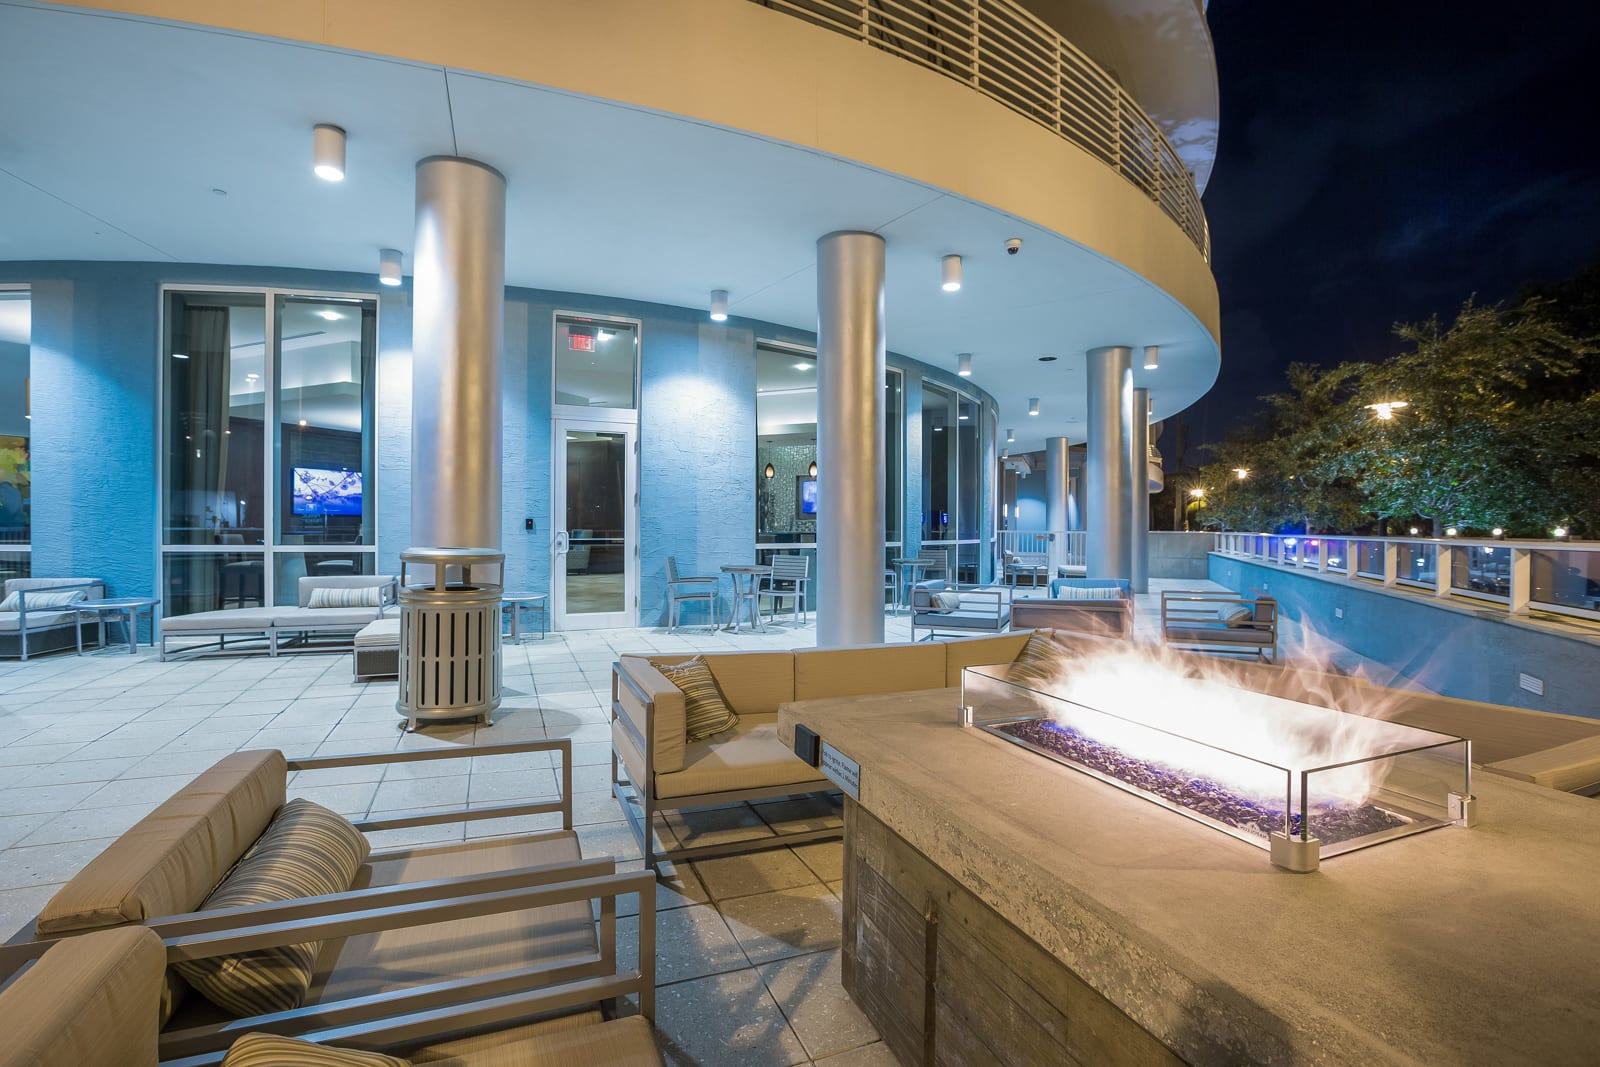 Cozy Fire Pit with Seating at Amaray Las Olas by Windsor Apartments, 215 SE 8th Ave, Fort Lauderdale